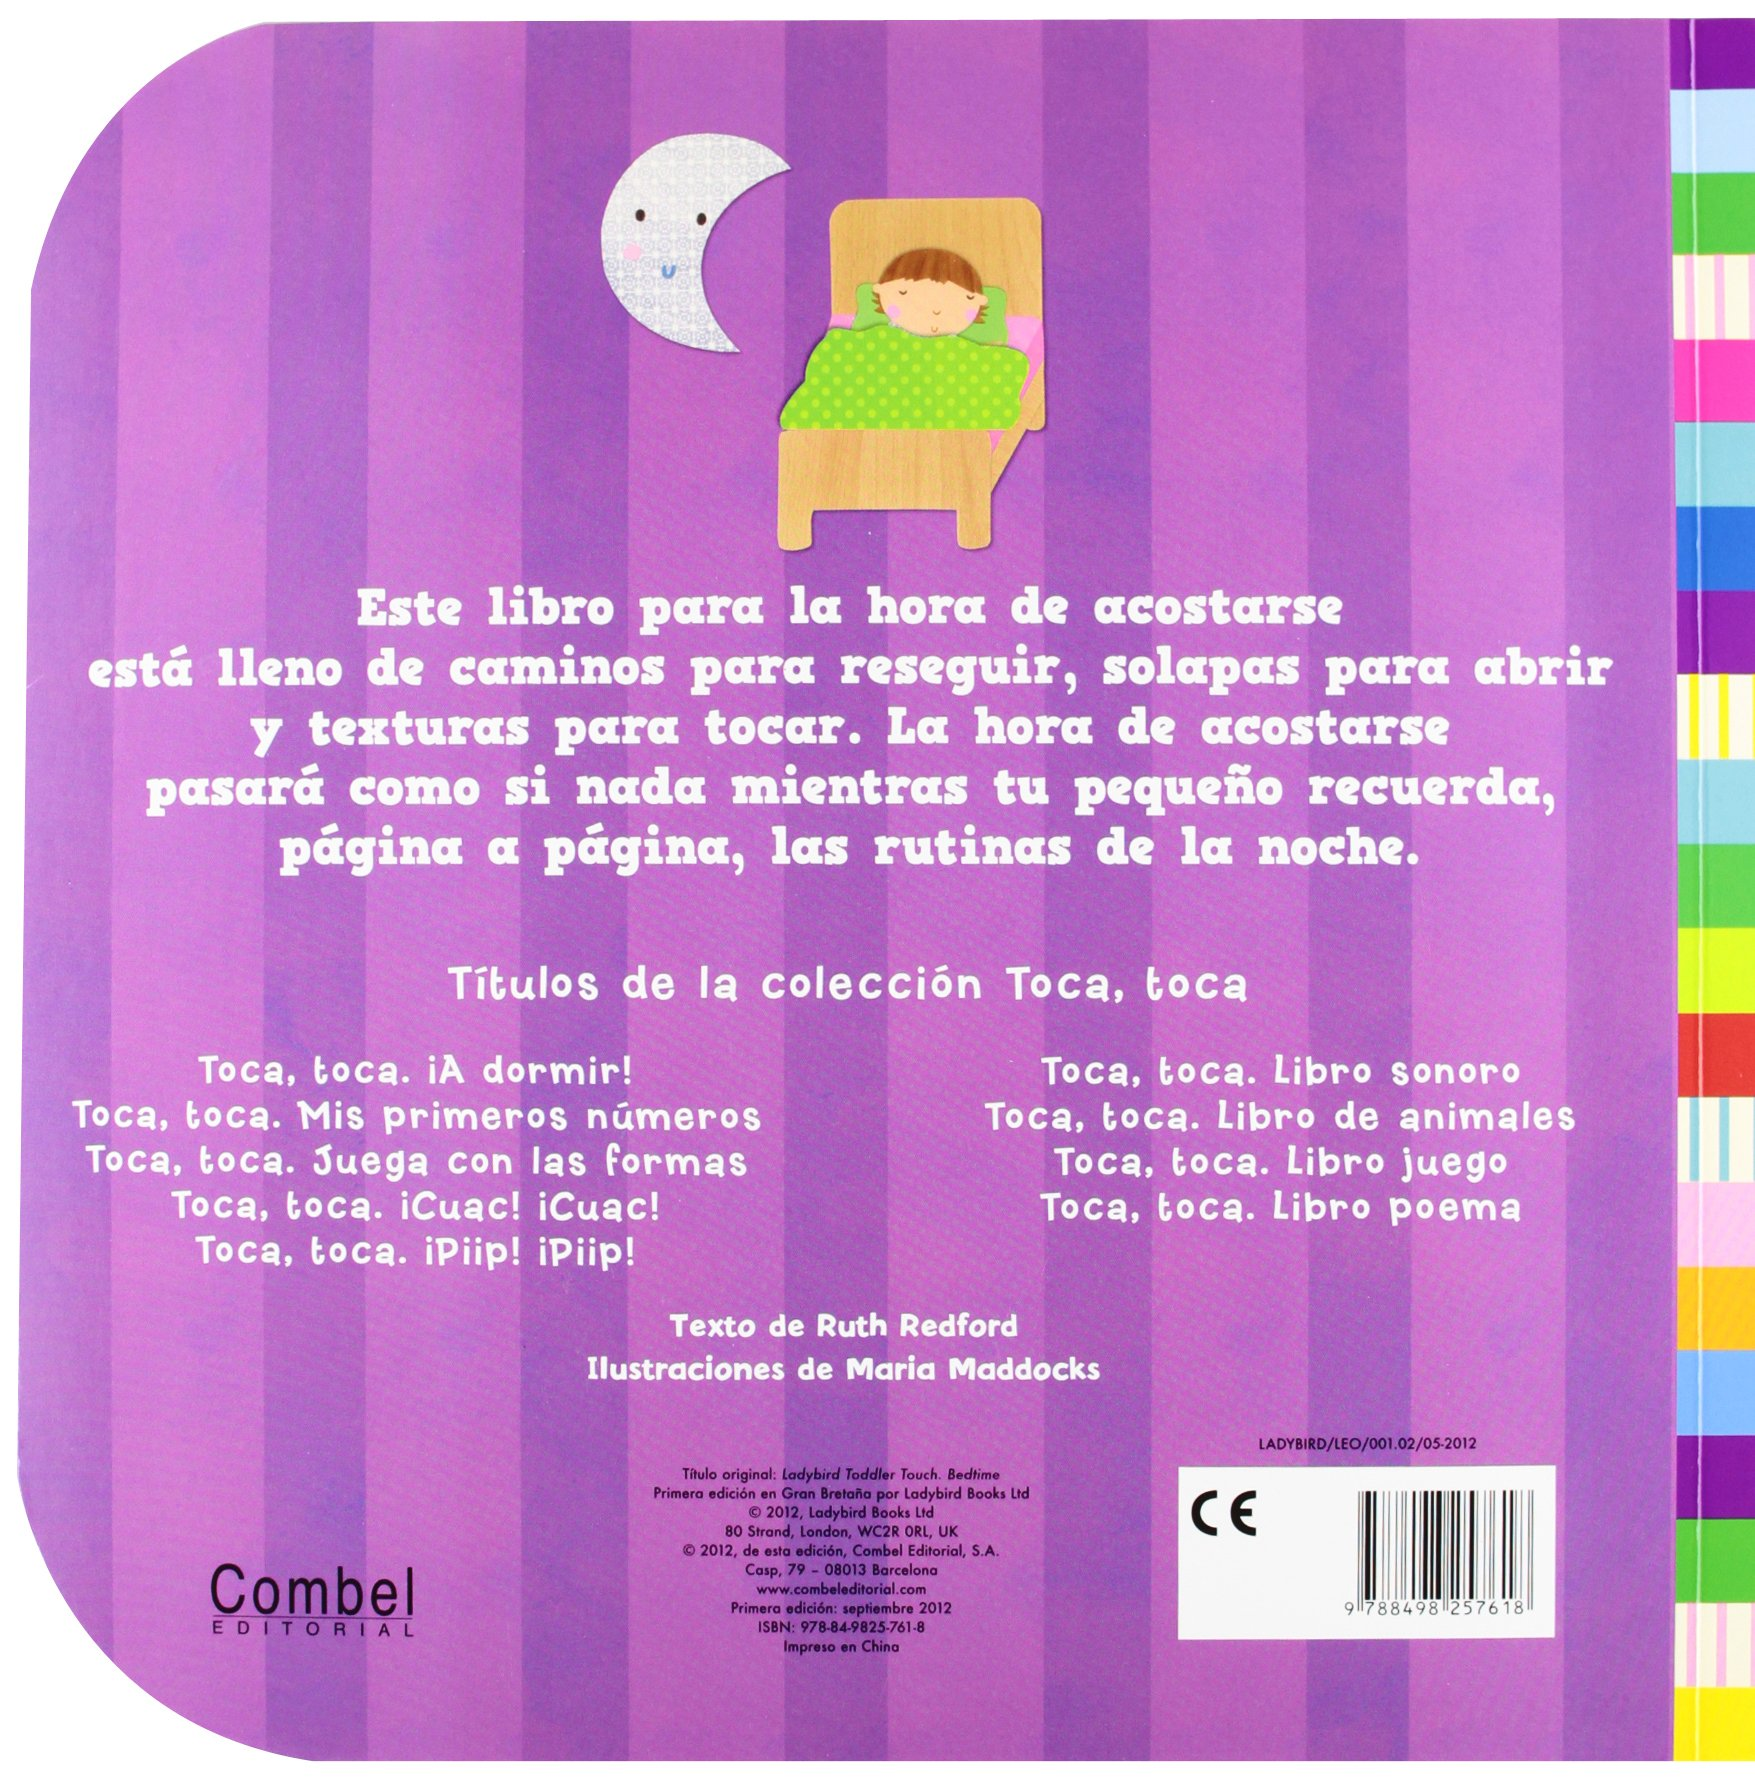 Amazon.com: ¡A dormir! (Toca toca series) (Spanish Edition) (9788498257618): Ruth Redford, Maria Maddocks: Books